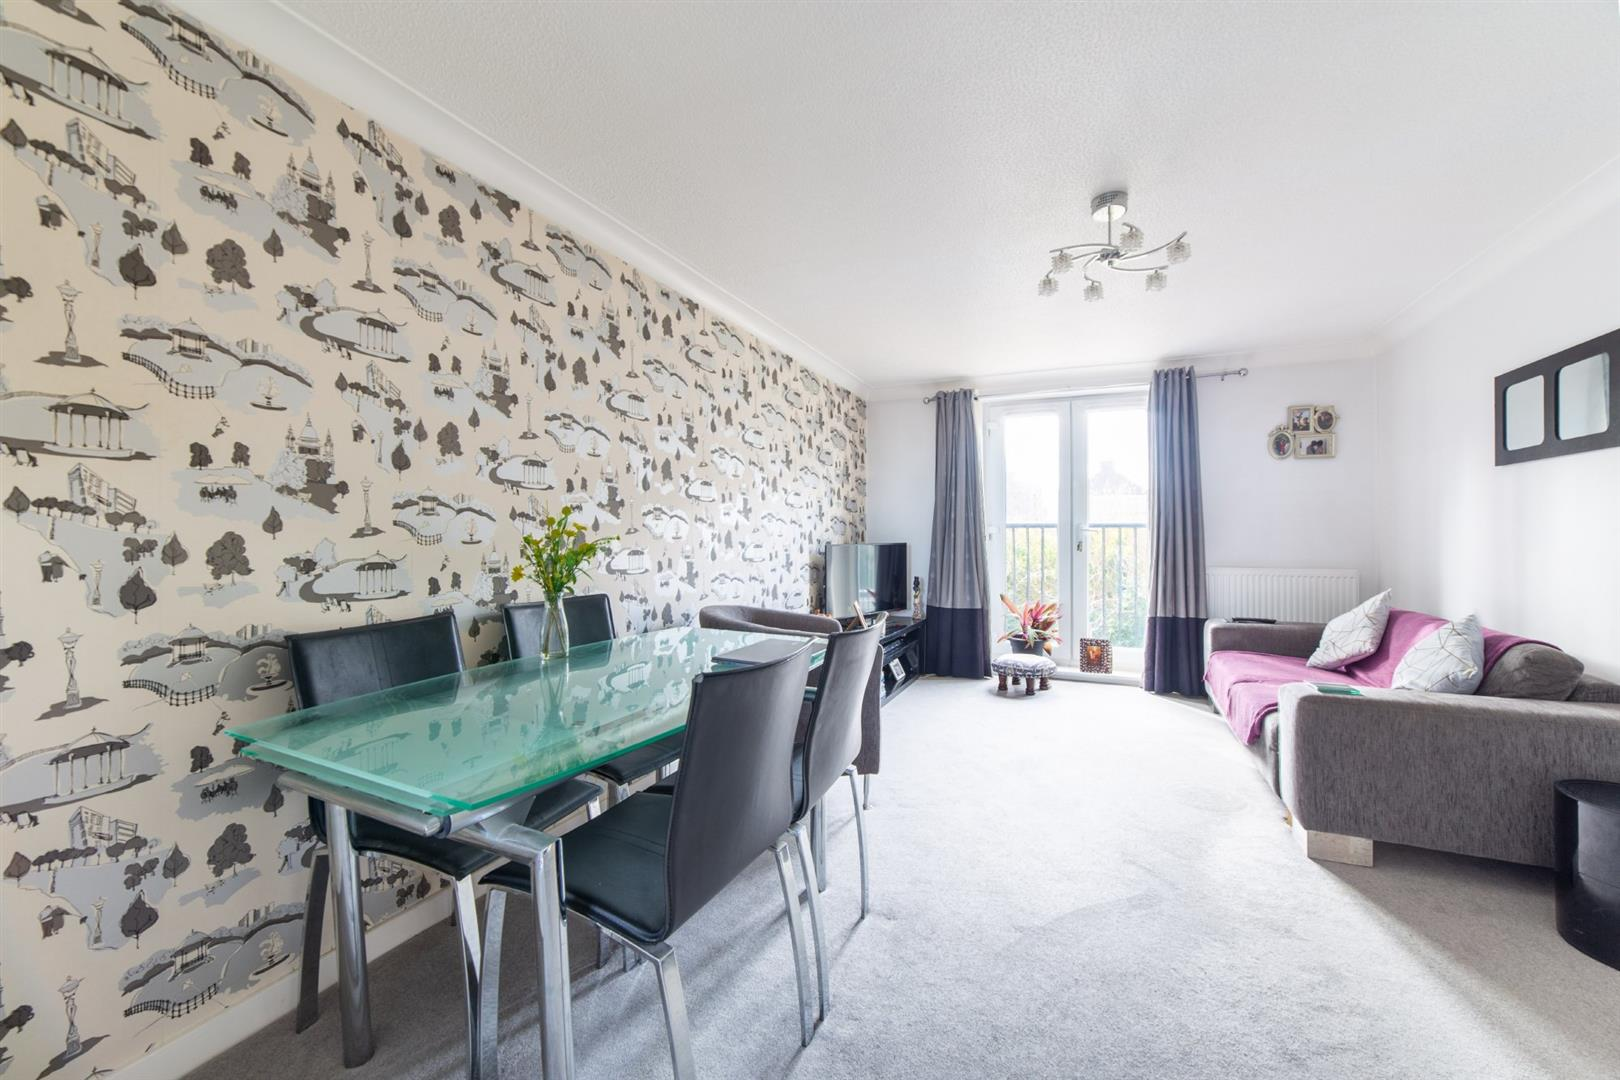 2 bed apartment for sale in Newcastle Upon Tyne, NE6 5BJ 5